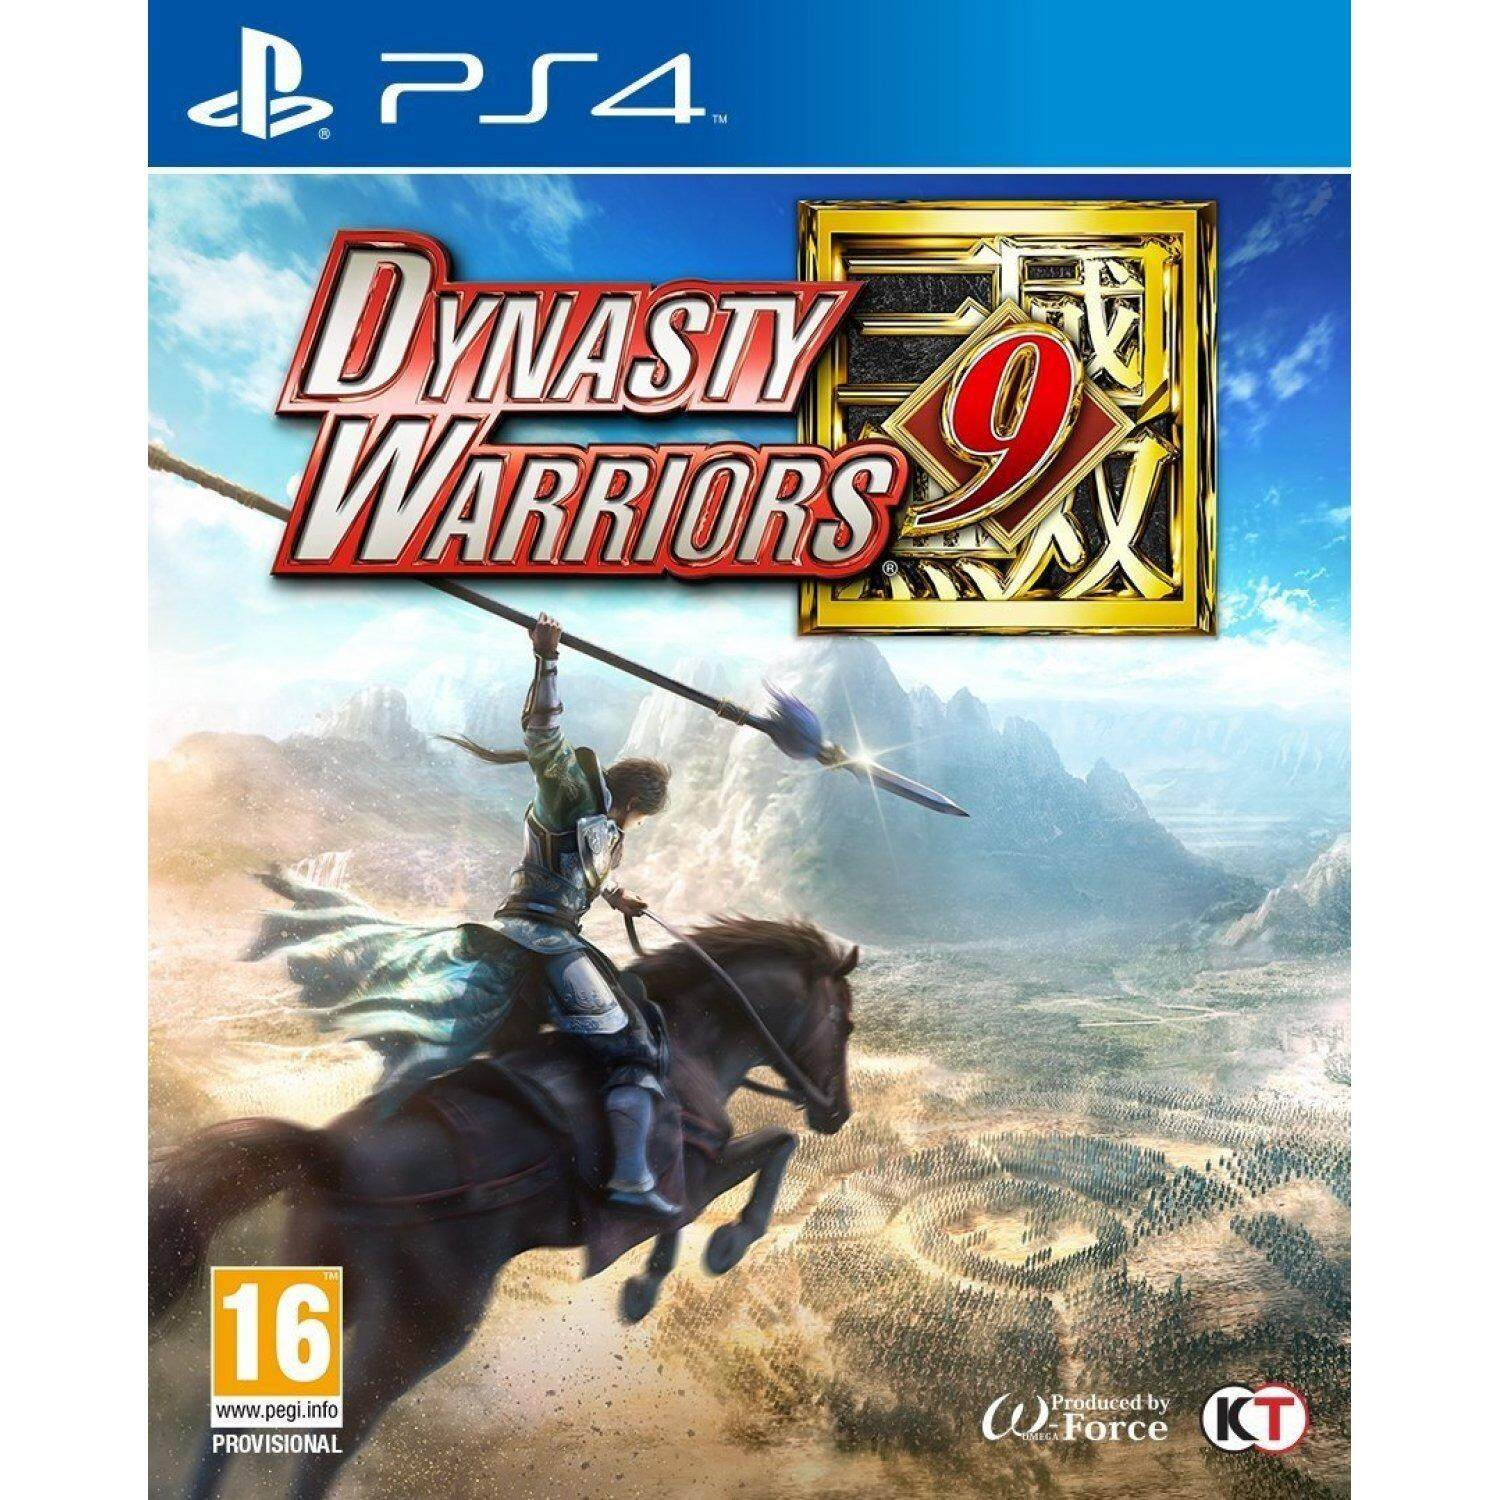 PS4 DYNASTY WARRIORS 9 (Europe)